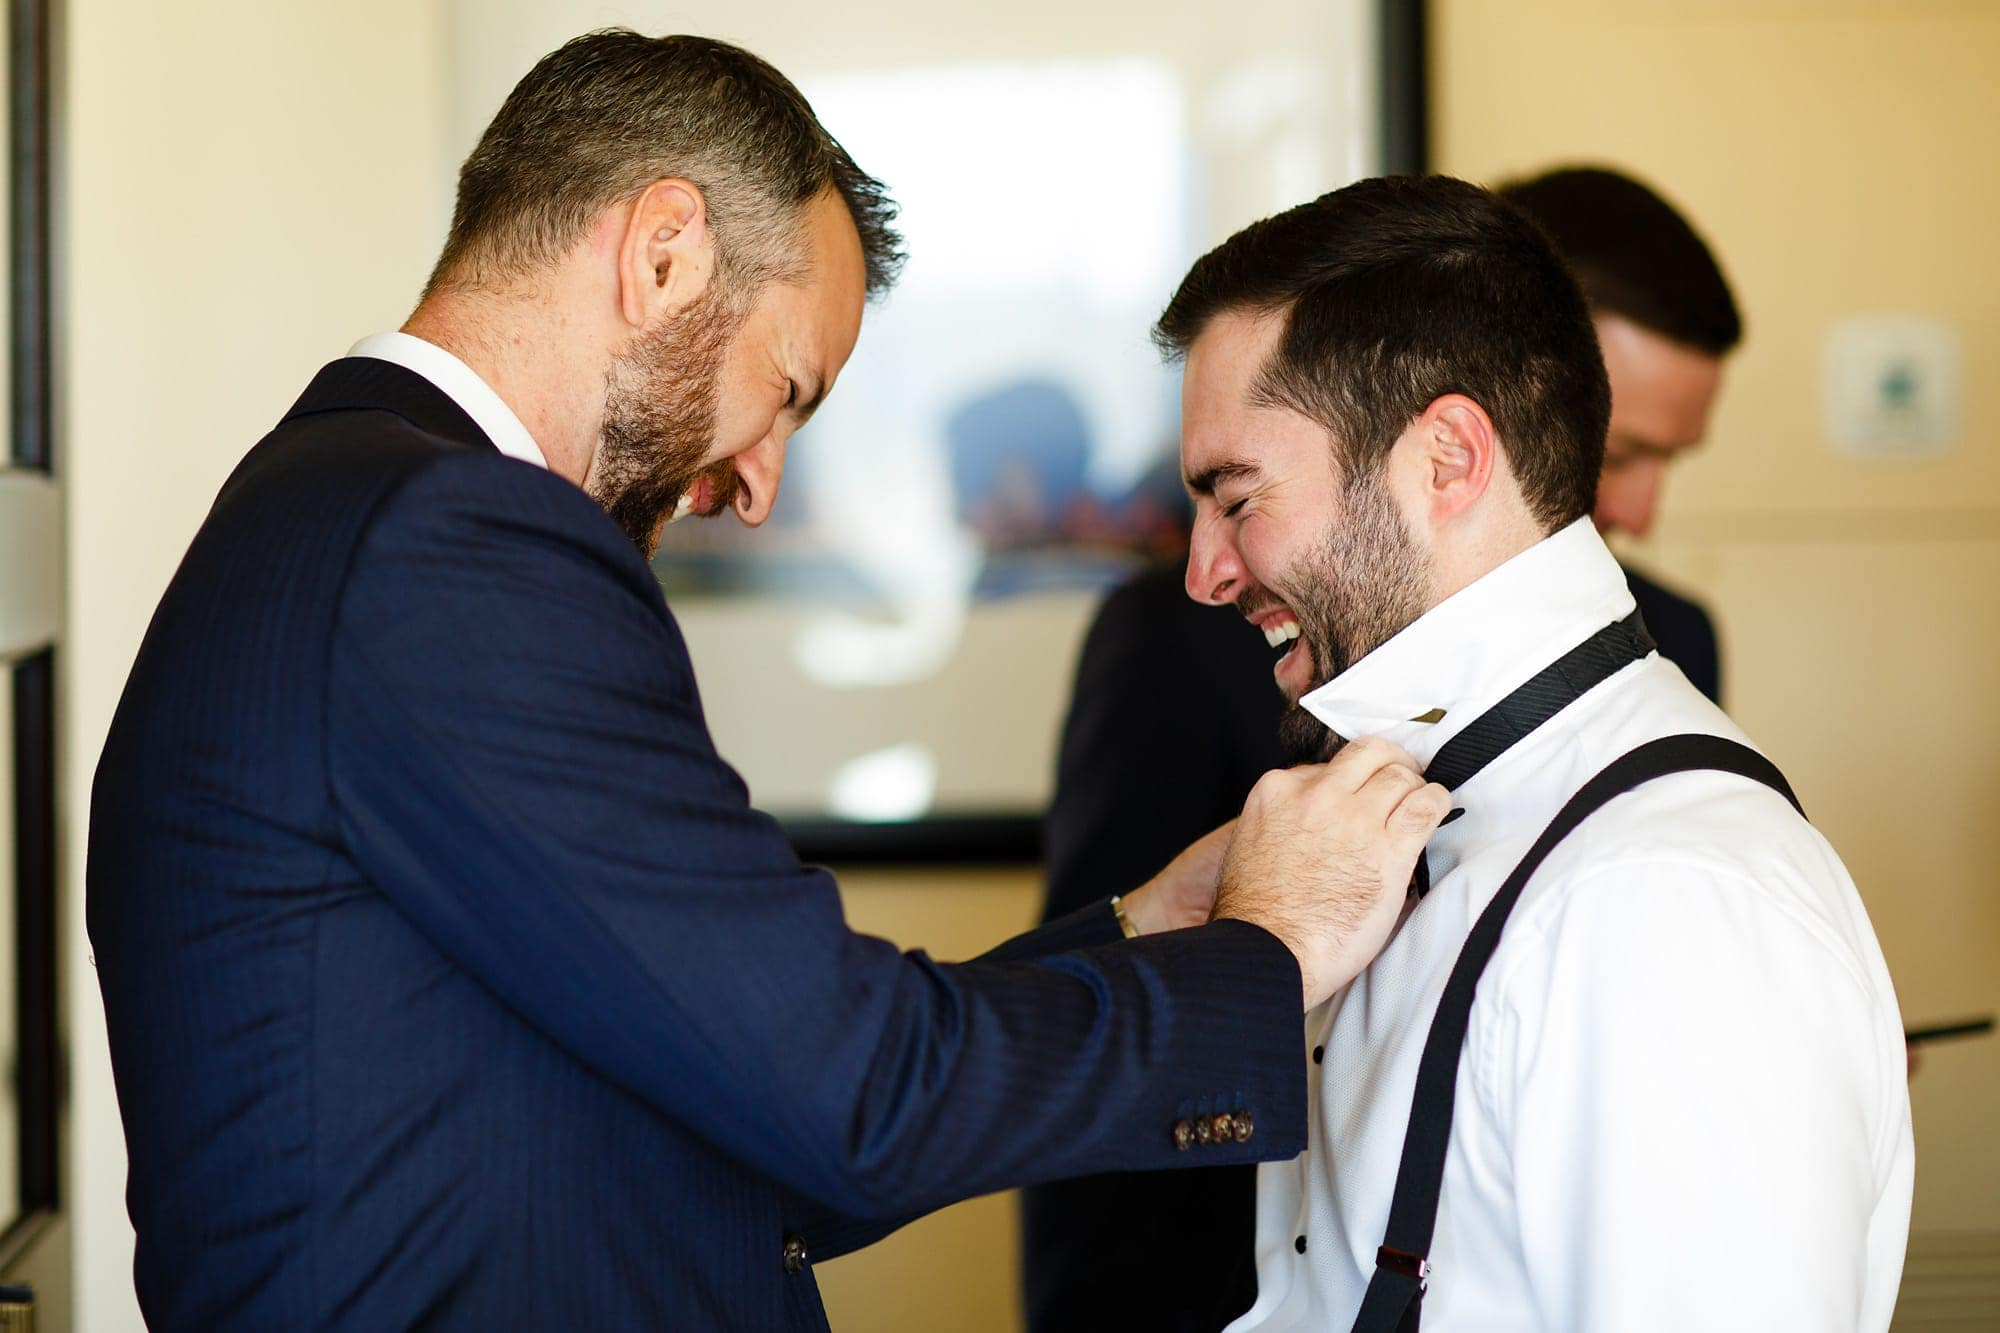 Bryan laughs while getting help with his tie at the St. Julien Hotel in Boulder